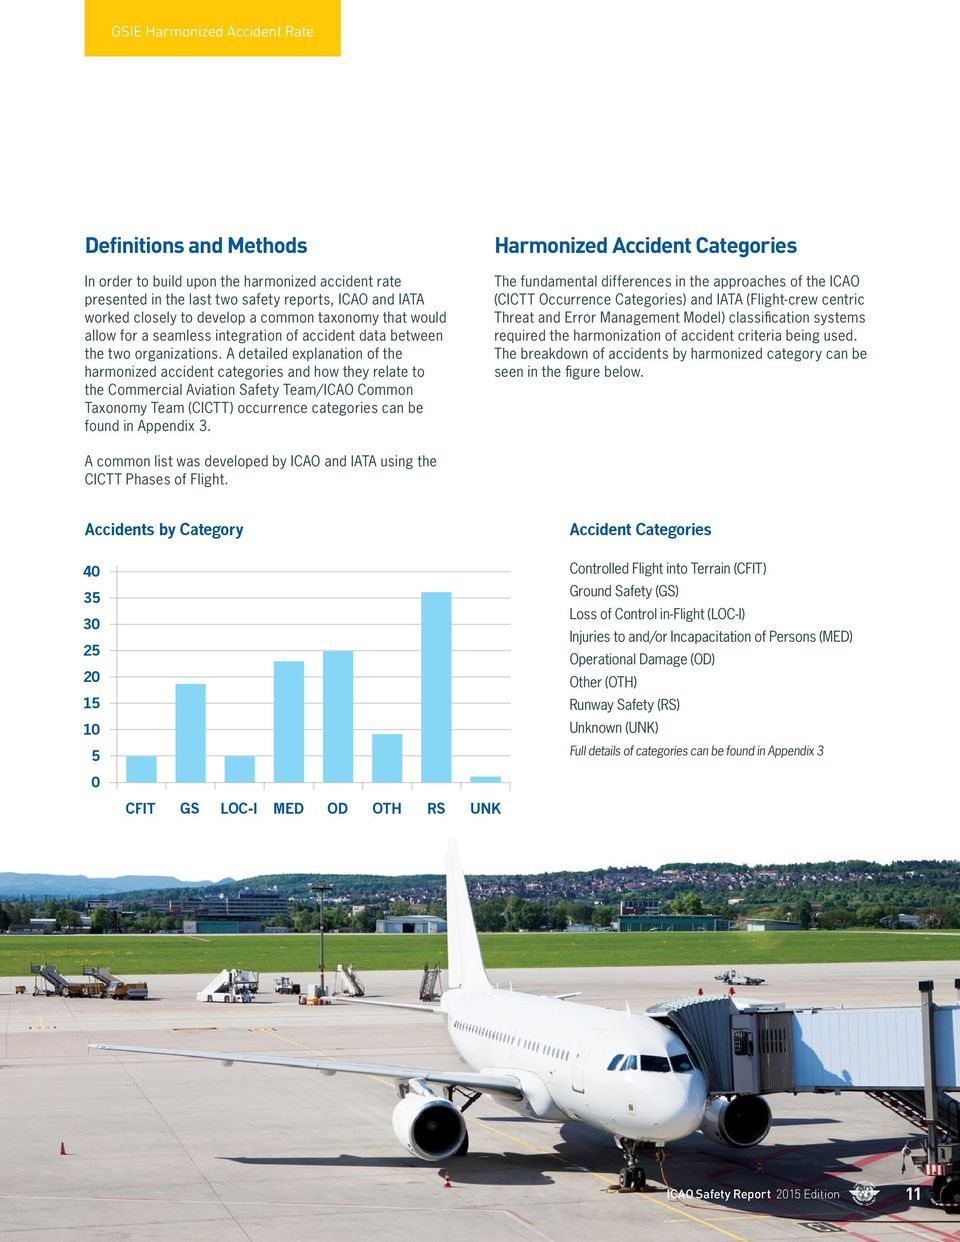 A detailed explanation of the harmonized accident categories and how they relate to the Commercial Aviation Safety Team/ICAO Common Taxonomy Team (CICTT) occurrence categories can be found in